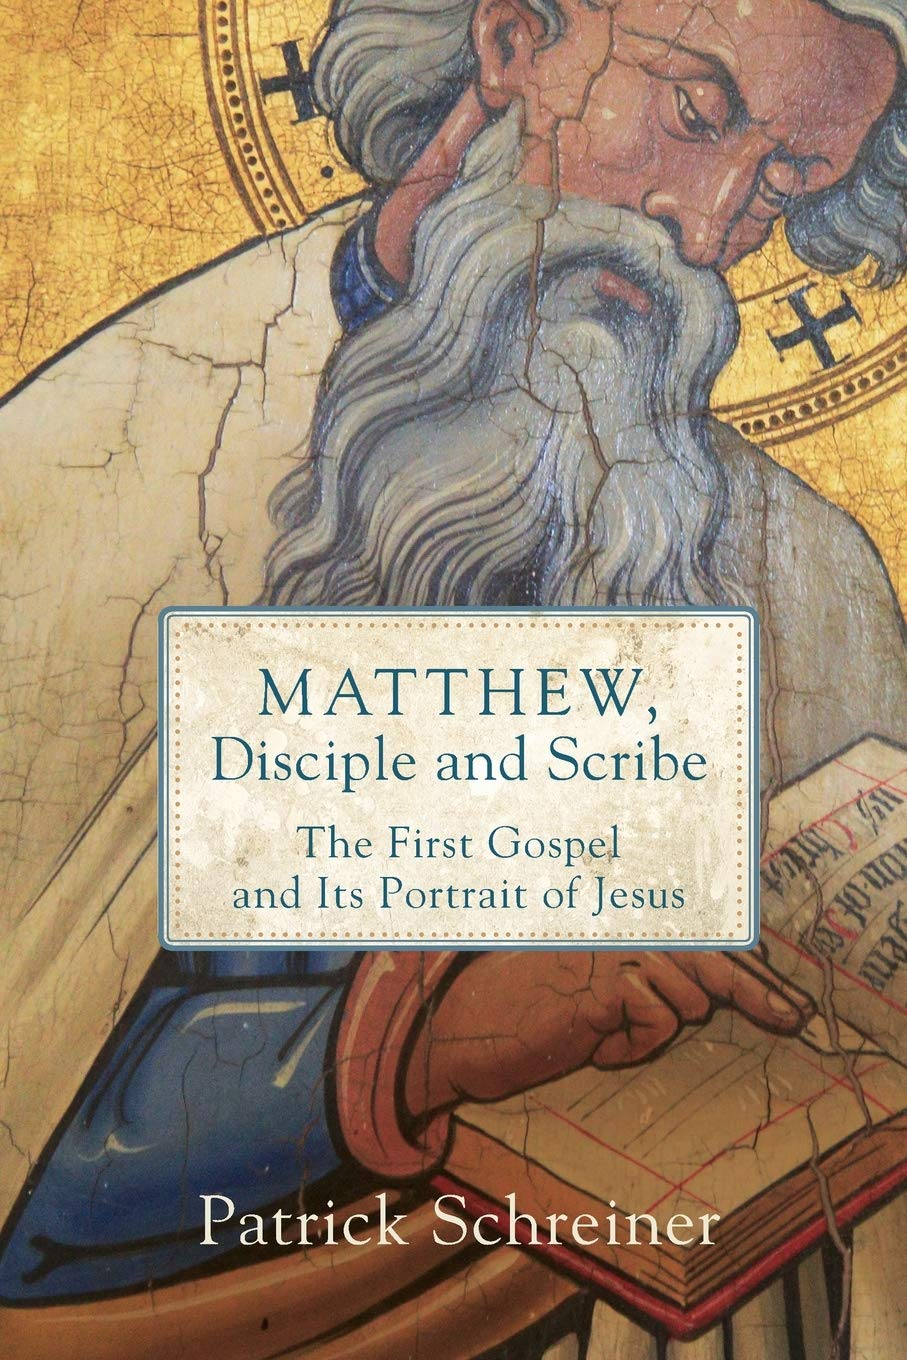 Matthew, Disciple and Scribe: The First Gospel and Its Portrait of Jesus book cover